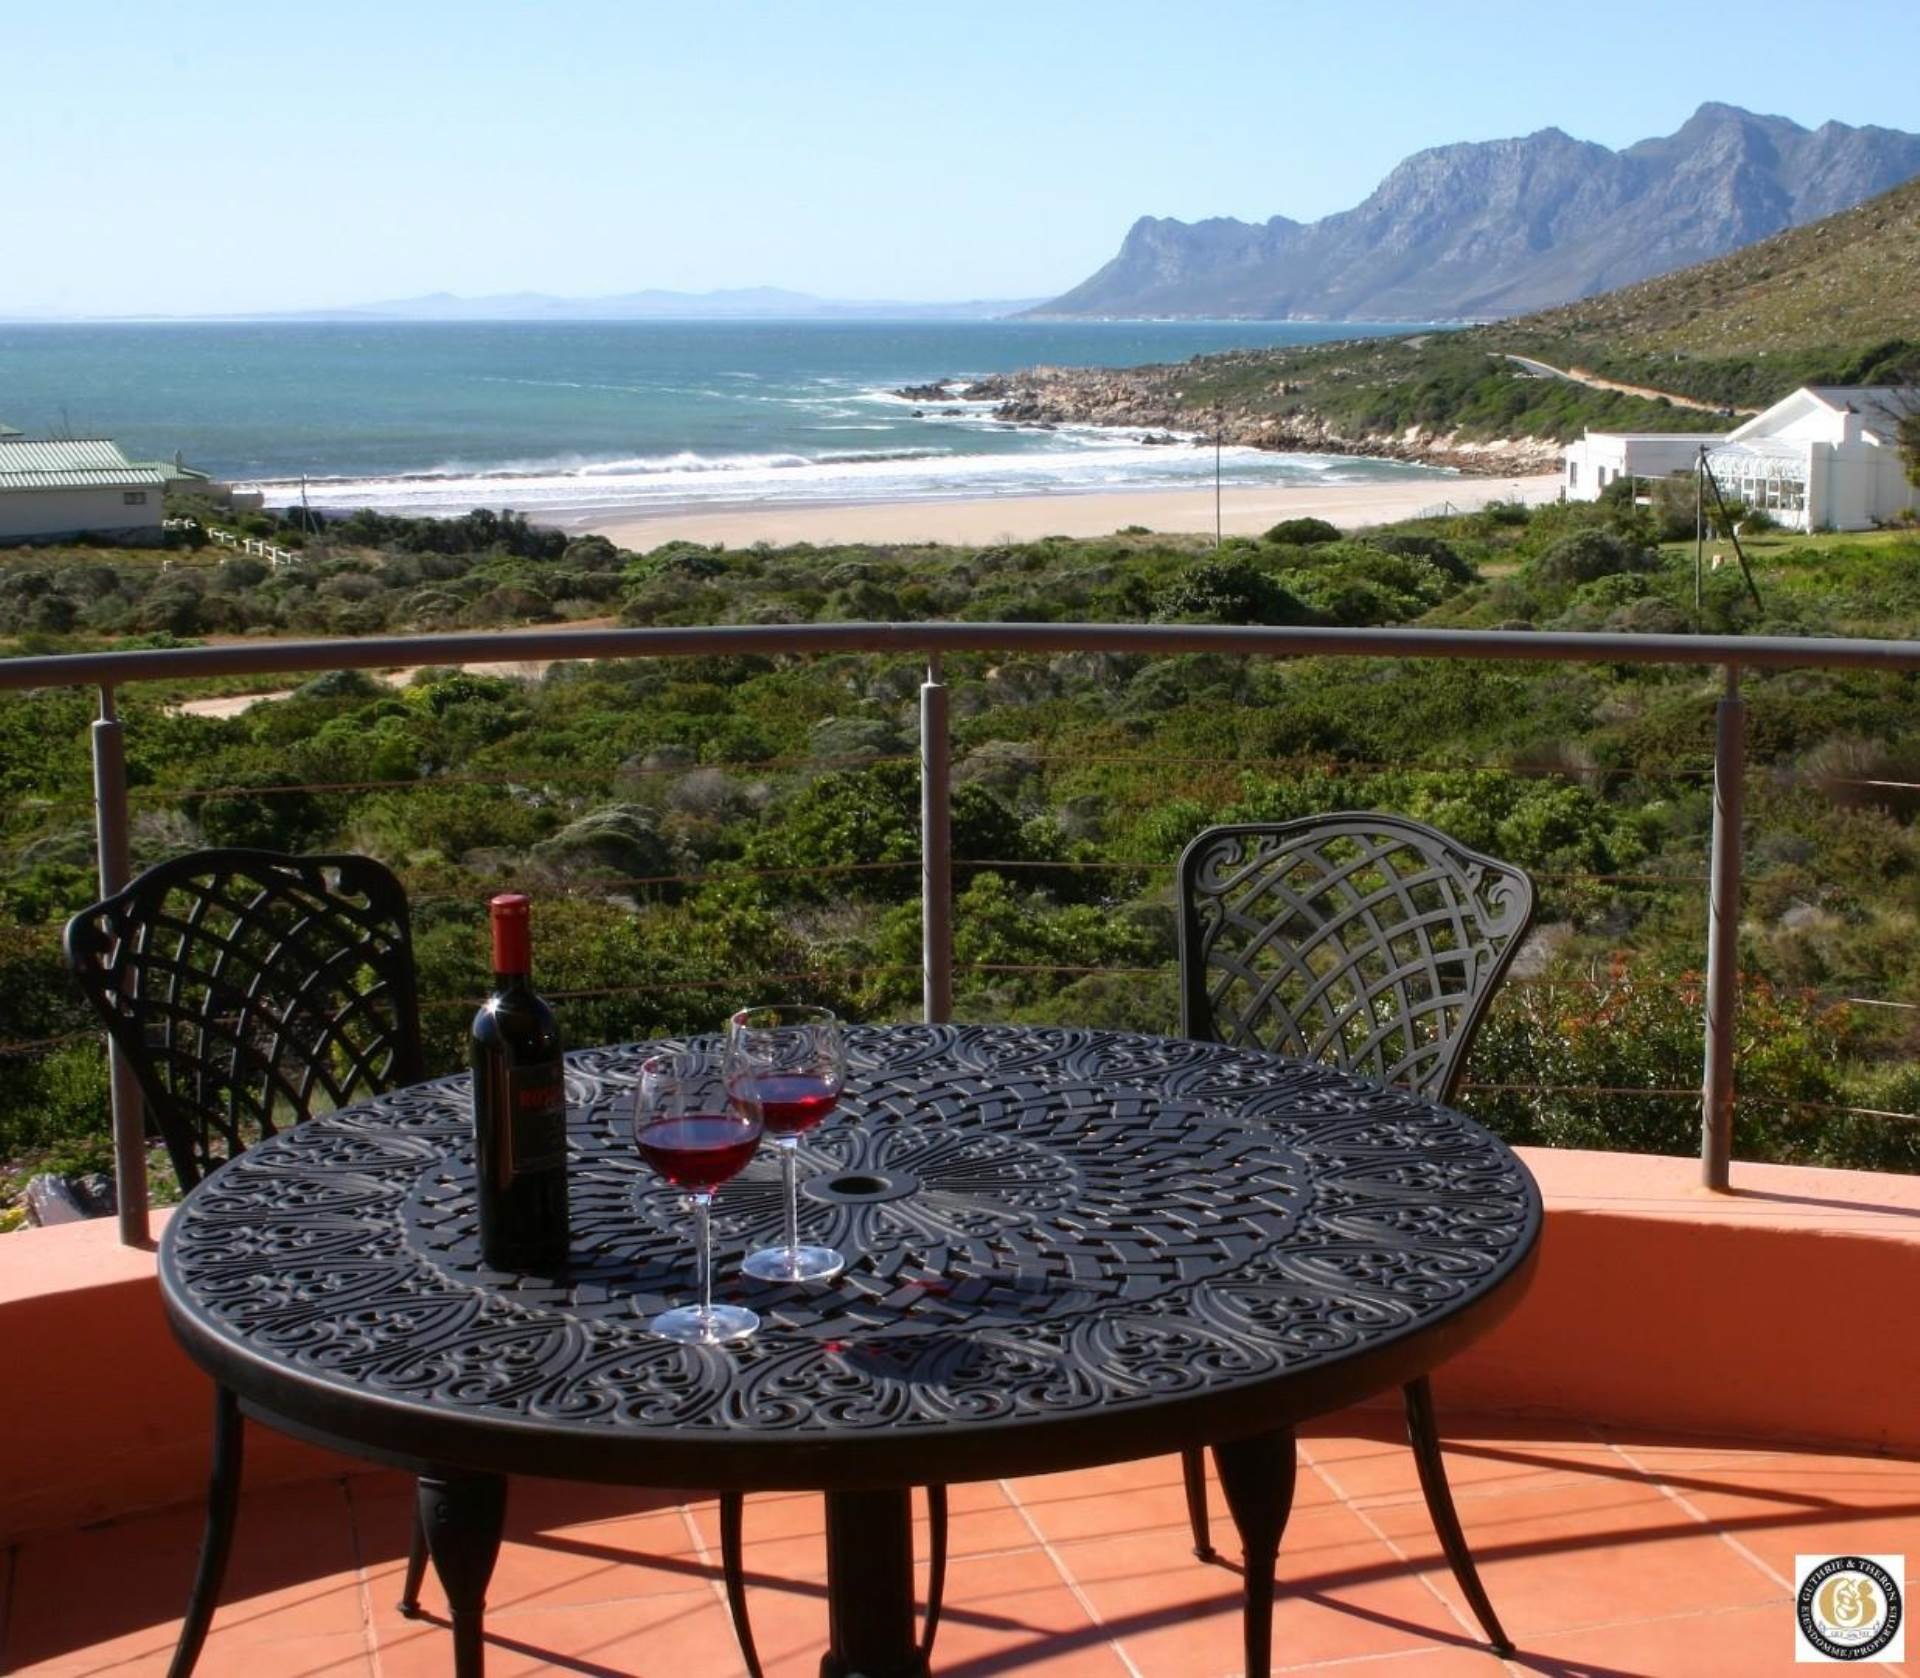 House for sale in rooi els rooi els western cape for r 4350000